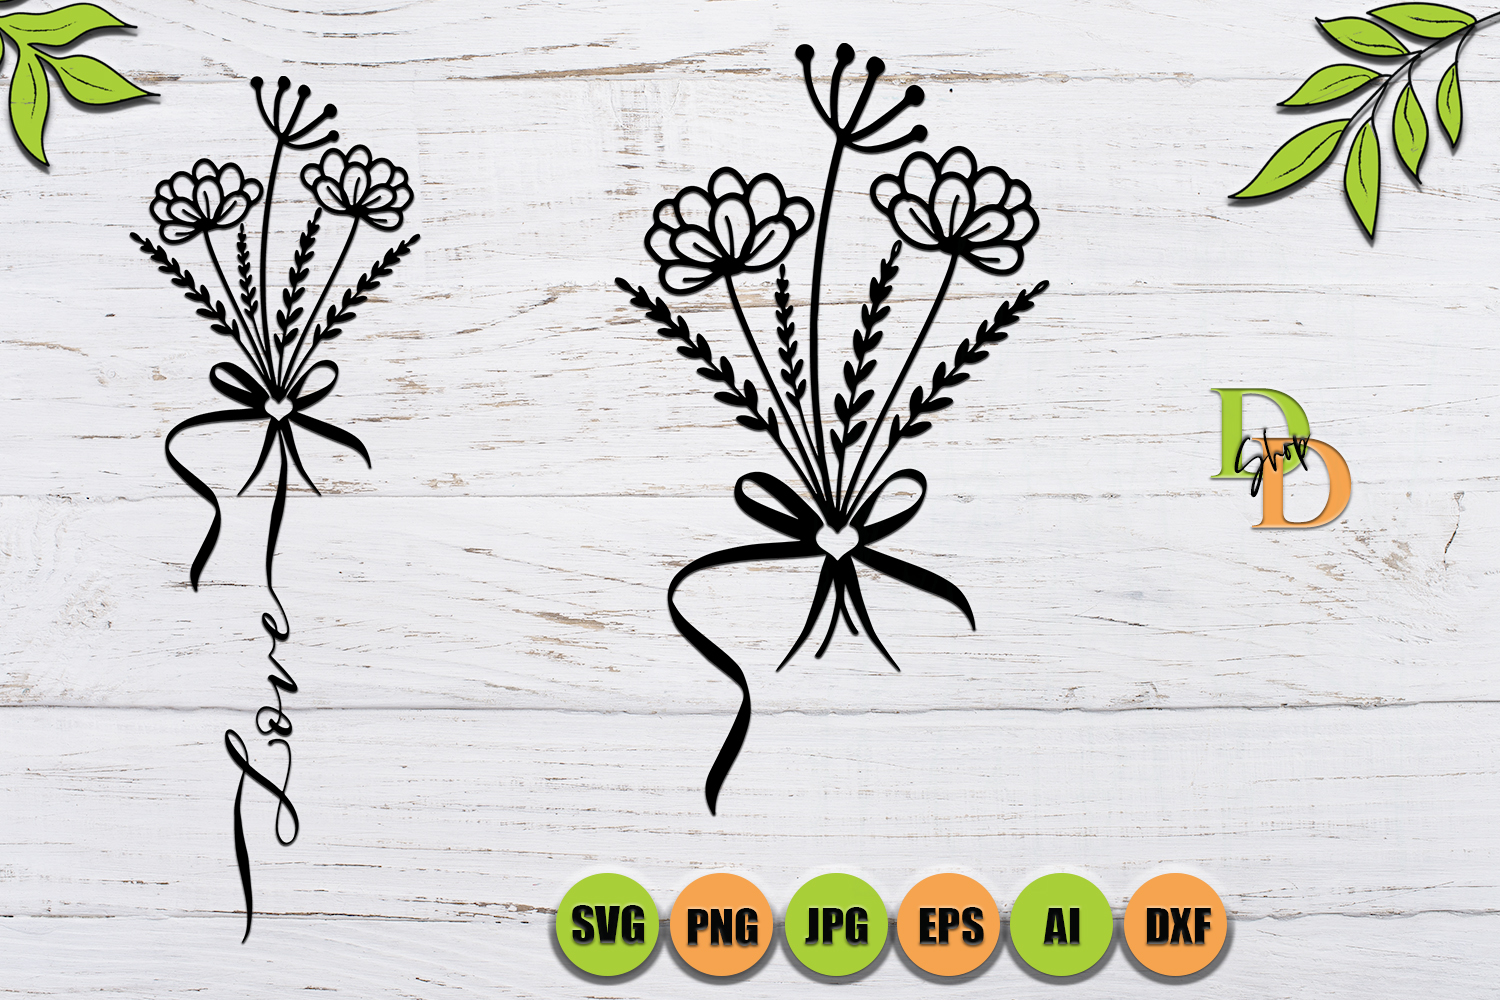 Vector Svg File Free Flower Svg Free Svg Cut Files Create Your Diy Projects Using Your Cricut Explore Silhouette And More The Free Cut Files Include Svg Dxf Eps And Png